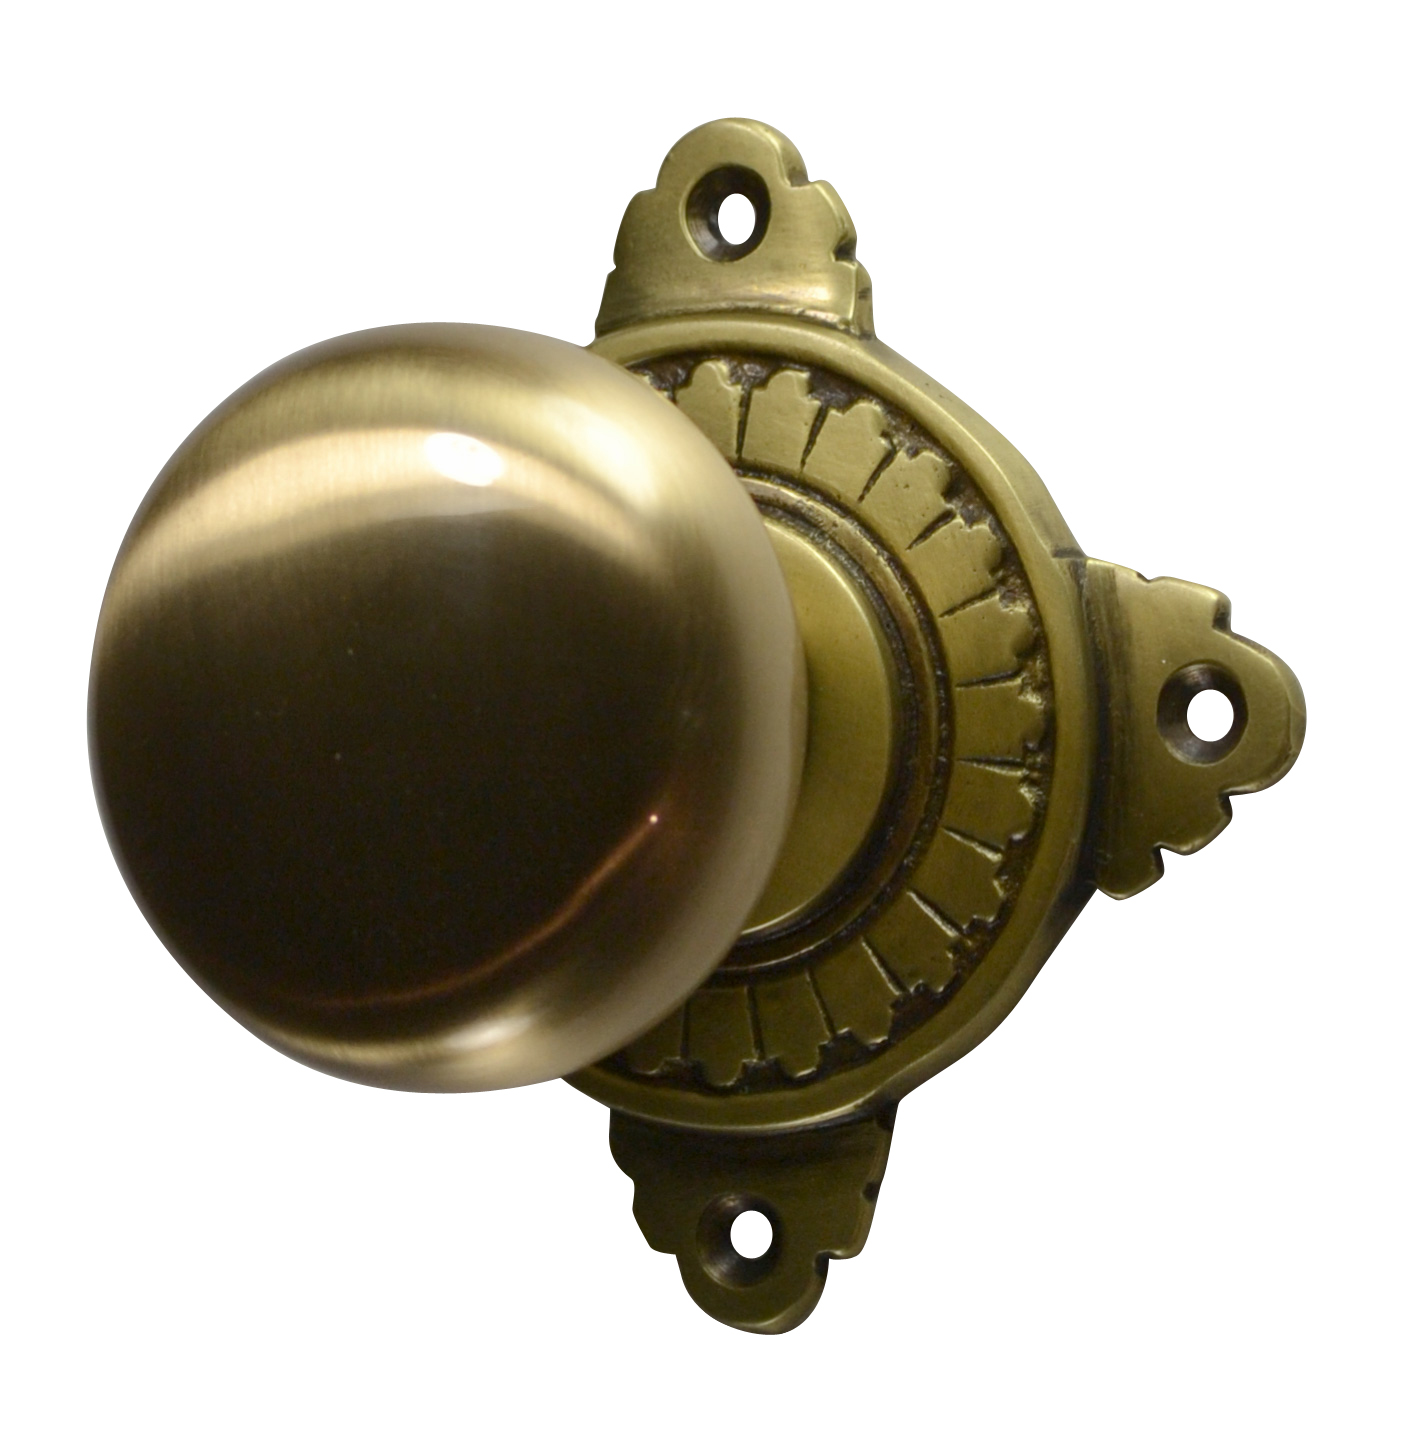 Round Brass Art Deco Door Knob (Antique Brass Finish)